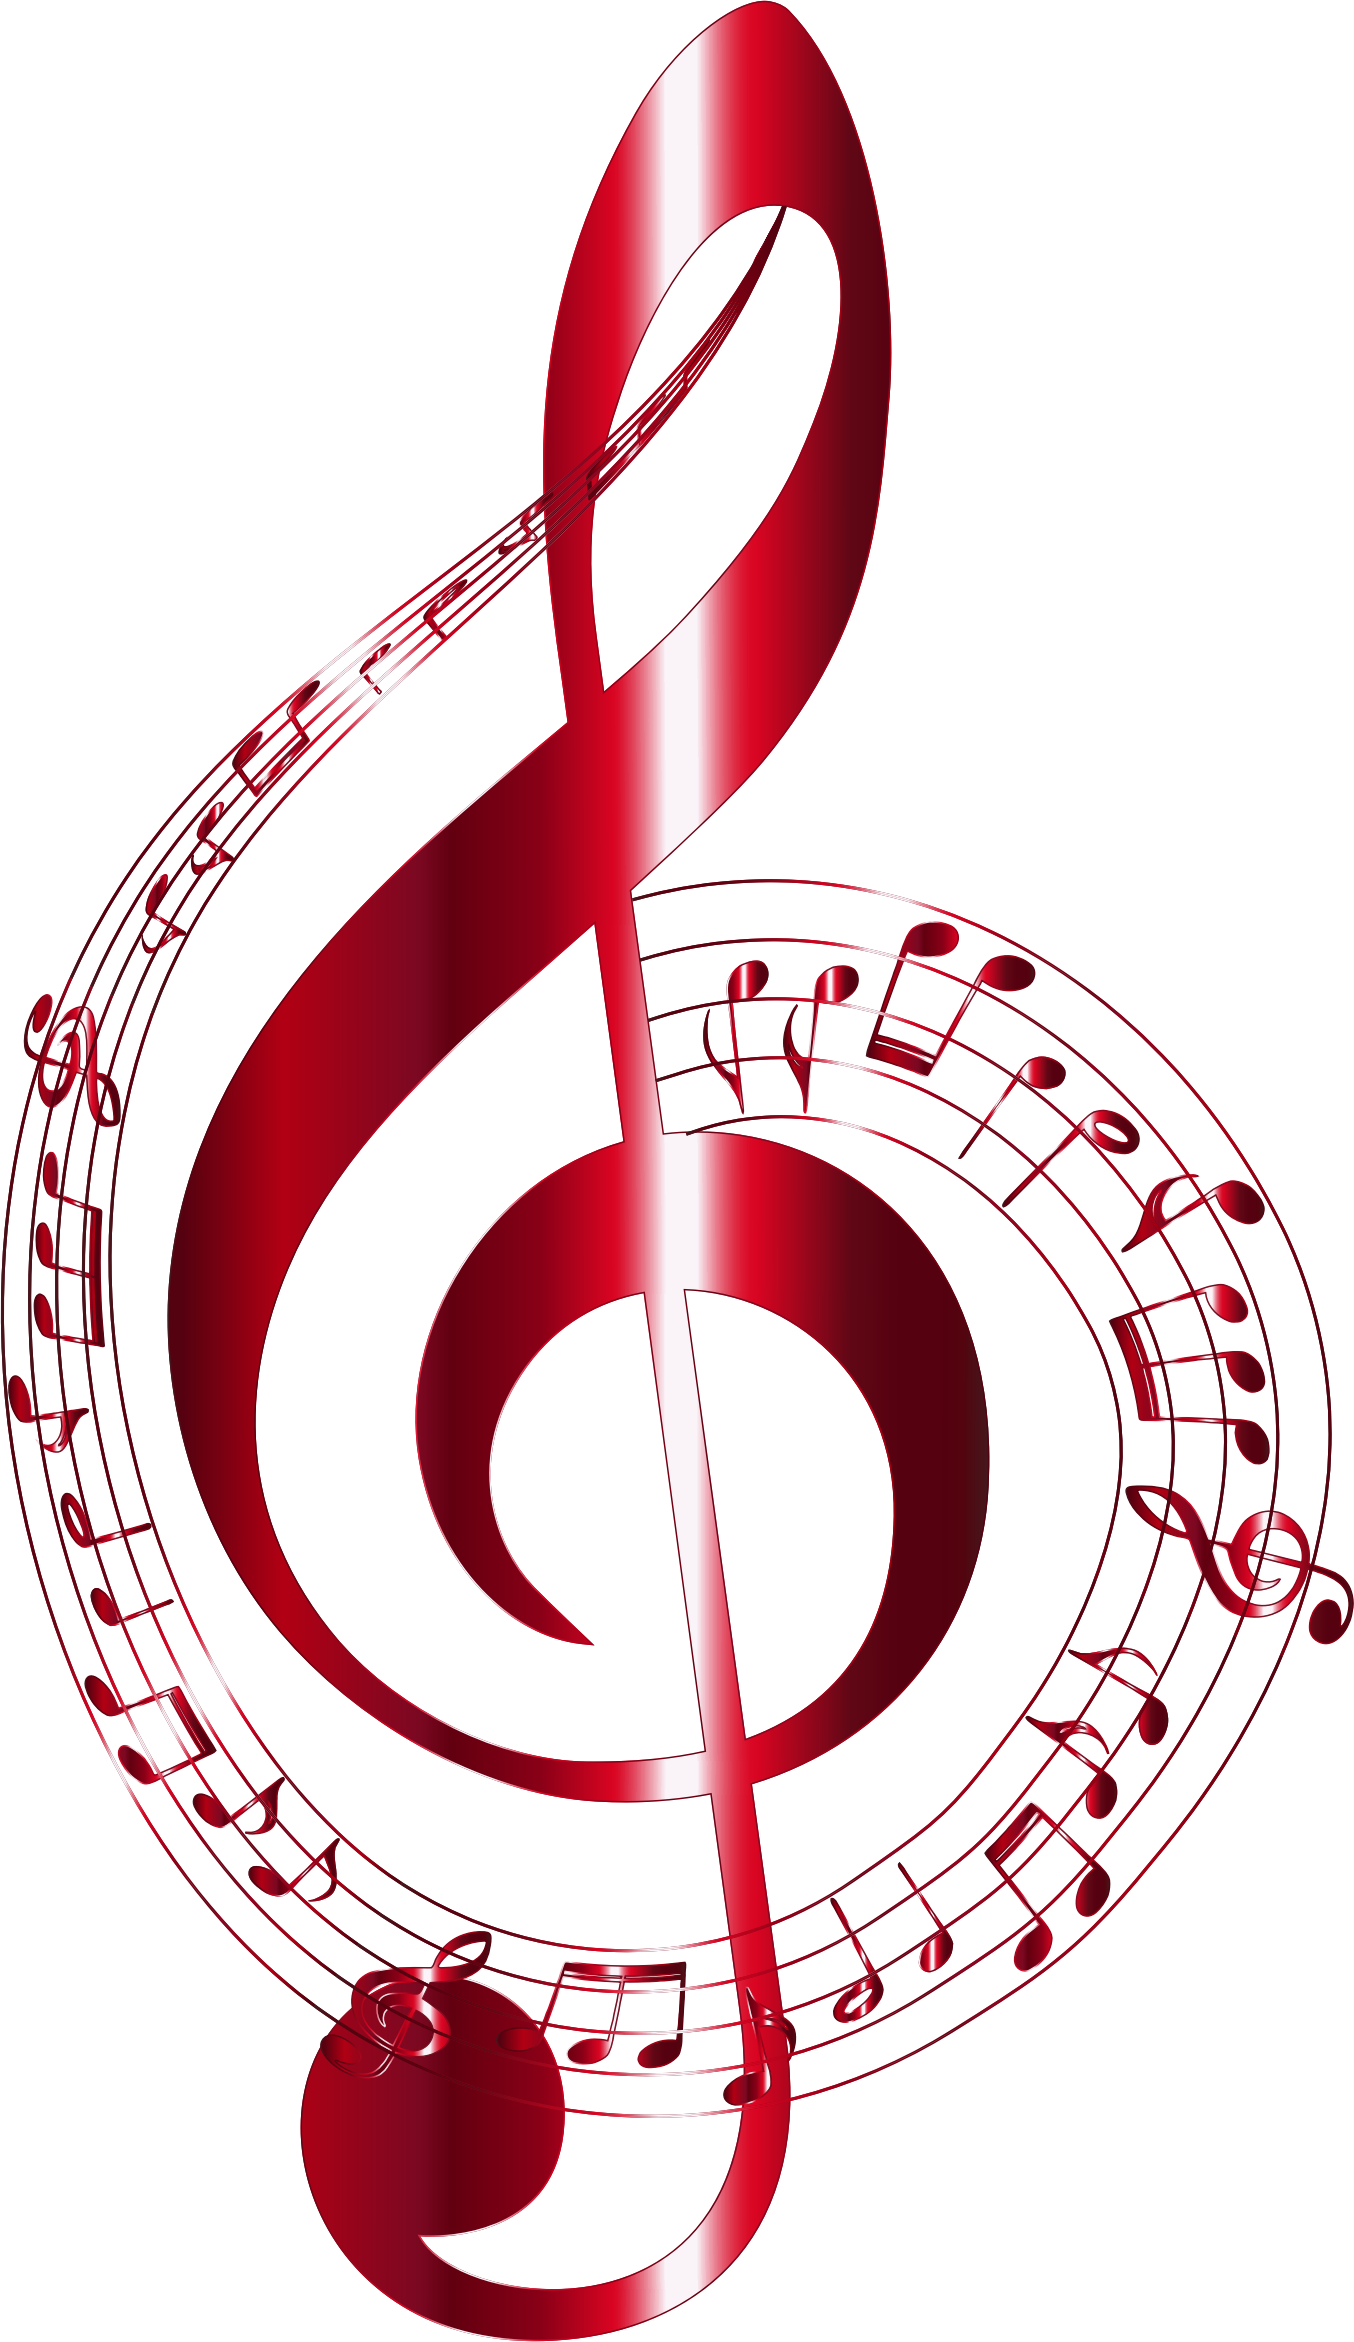 Musical notes red png. Vermilion typography no background